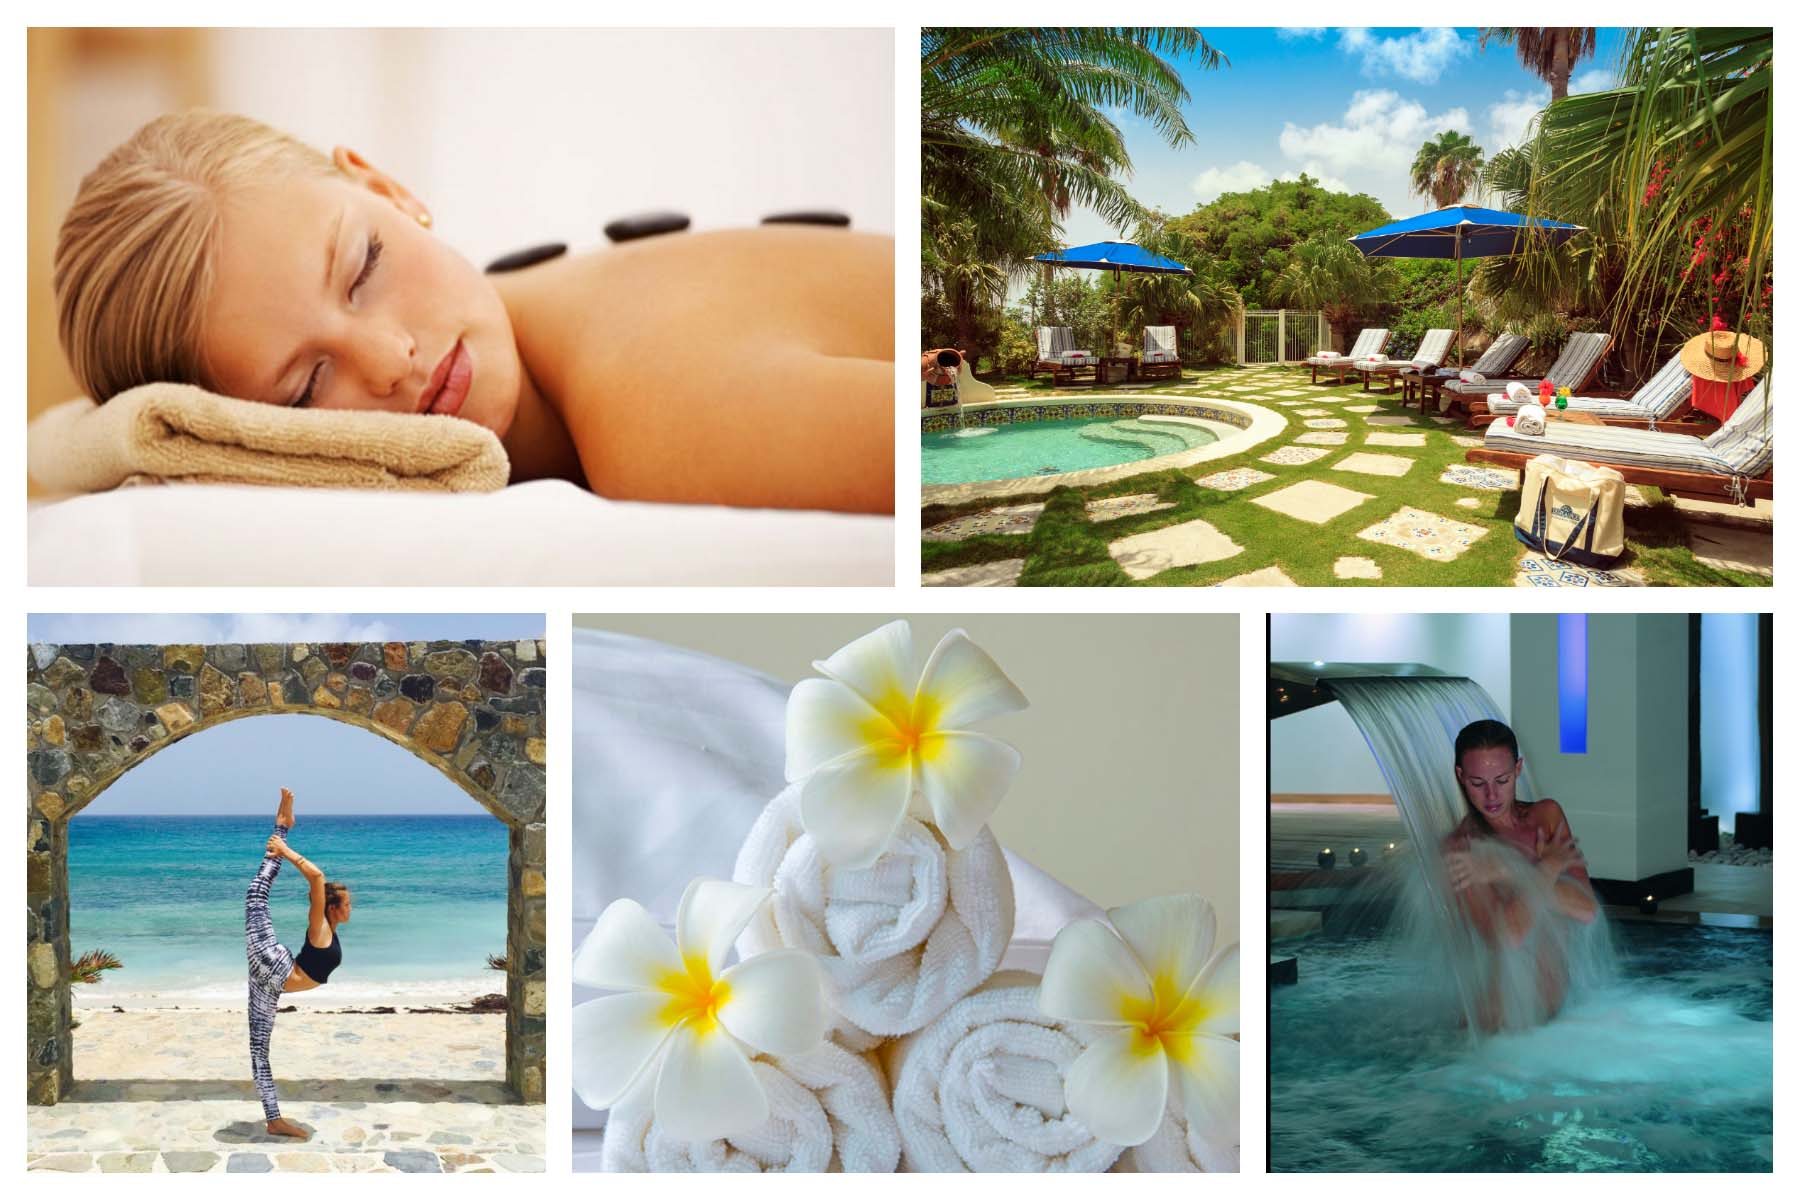 St Maarten/St Martin 2019/2020 - Wellness and Beauty: Spa, Massage, Hairdresser, Yoga, Pedicure, Manicure, Natural Products, Make Perfume, Body treatment, Facial Treatment, Acupuncture, Organic products.